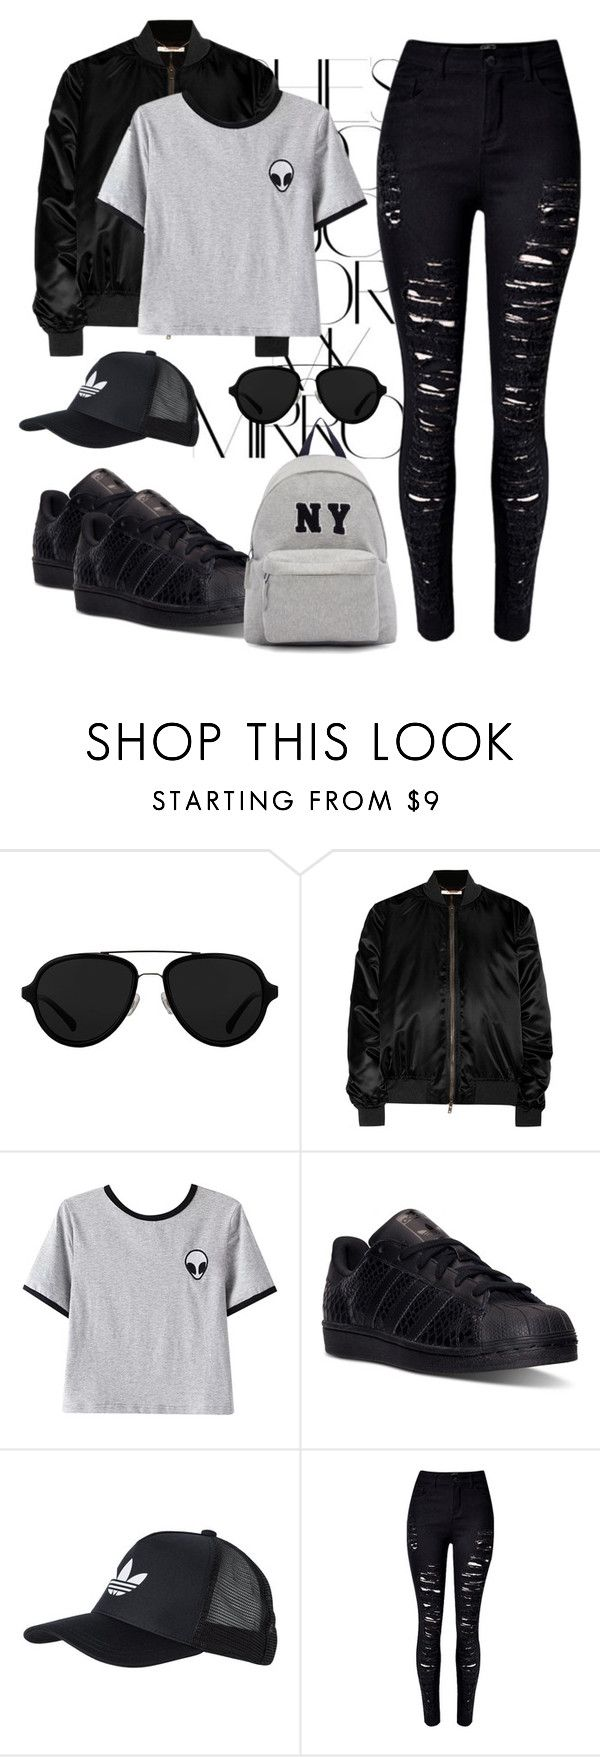 """Gangster Girl"" by lisa-boobear ❤ liked on Polyvore featuring Rika, 3.1 Phillip Lim, Givenchy, Chicnova Fashion, adidas, adidas Originals and Joshua's"